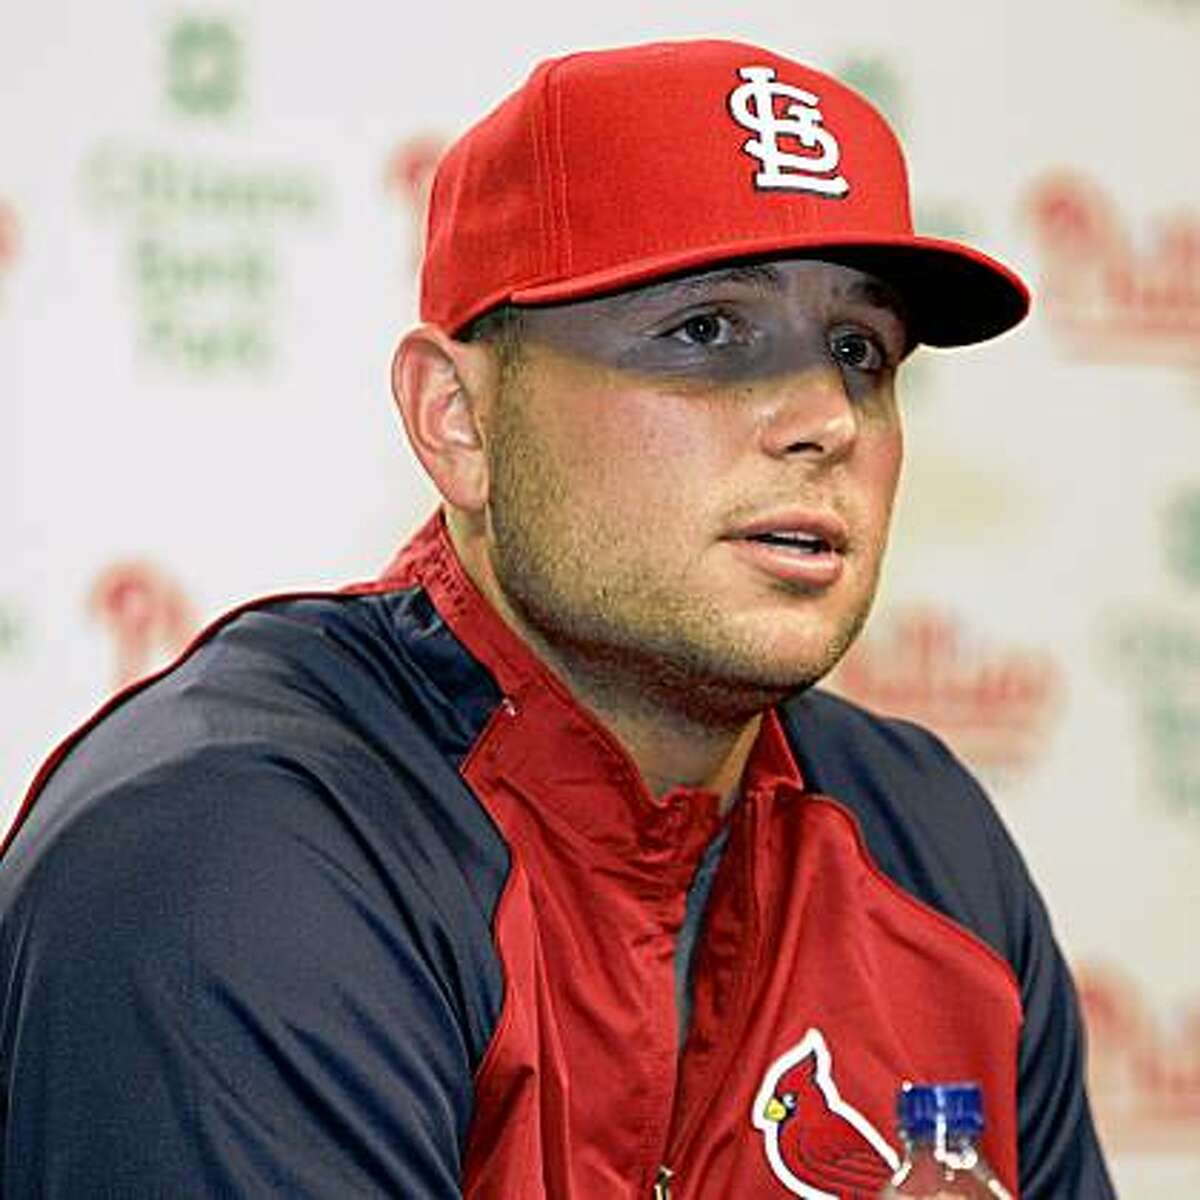 Matt Holliday appears at a news conference Friday, July 24, 2009, in Philadelphia, after it was announced that he had been traded from the Oakland Athletics to the St. Louis Cardinals for a package of prospects. (AP Photo/Tom Mihalek)